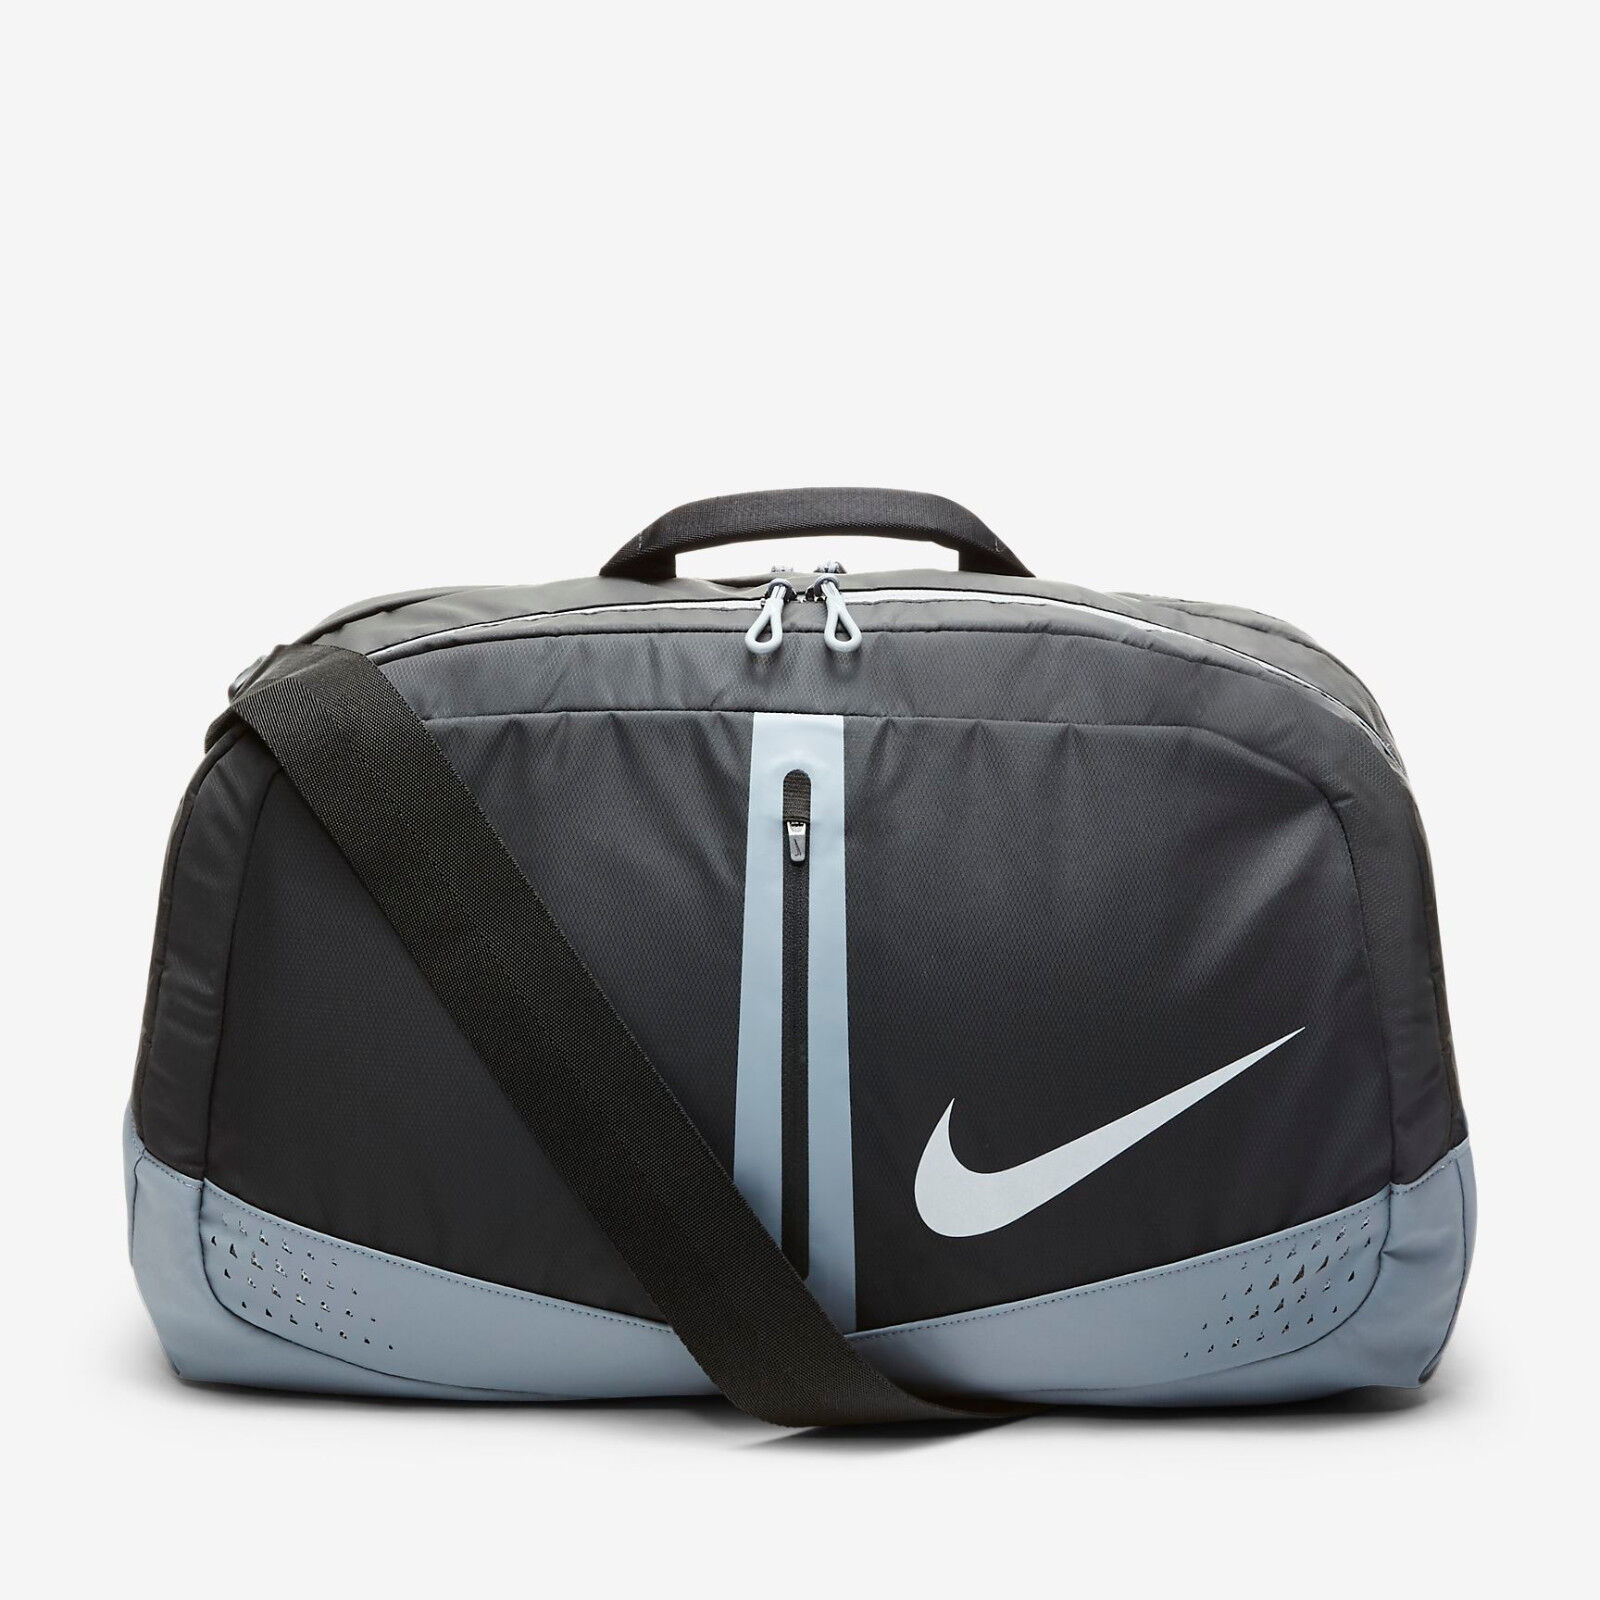 Nike Run Duffel Bag One Size Black Gray Gym Outdoors Men Wom